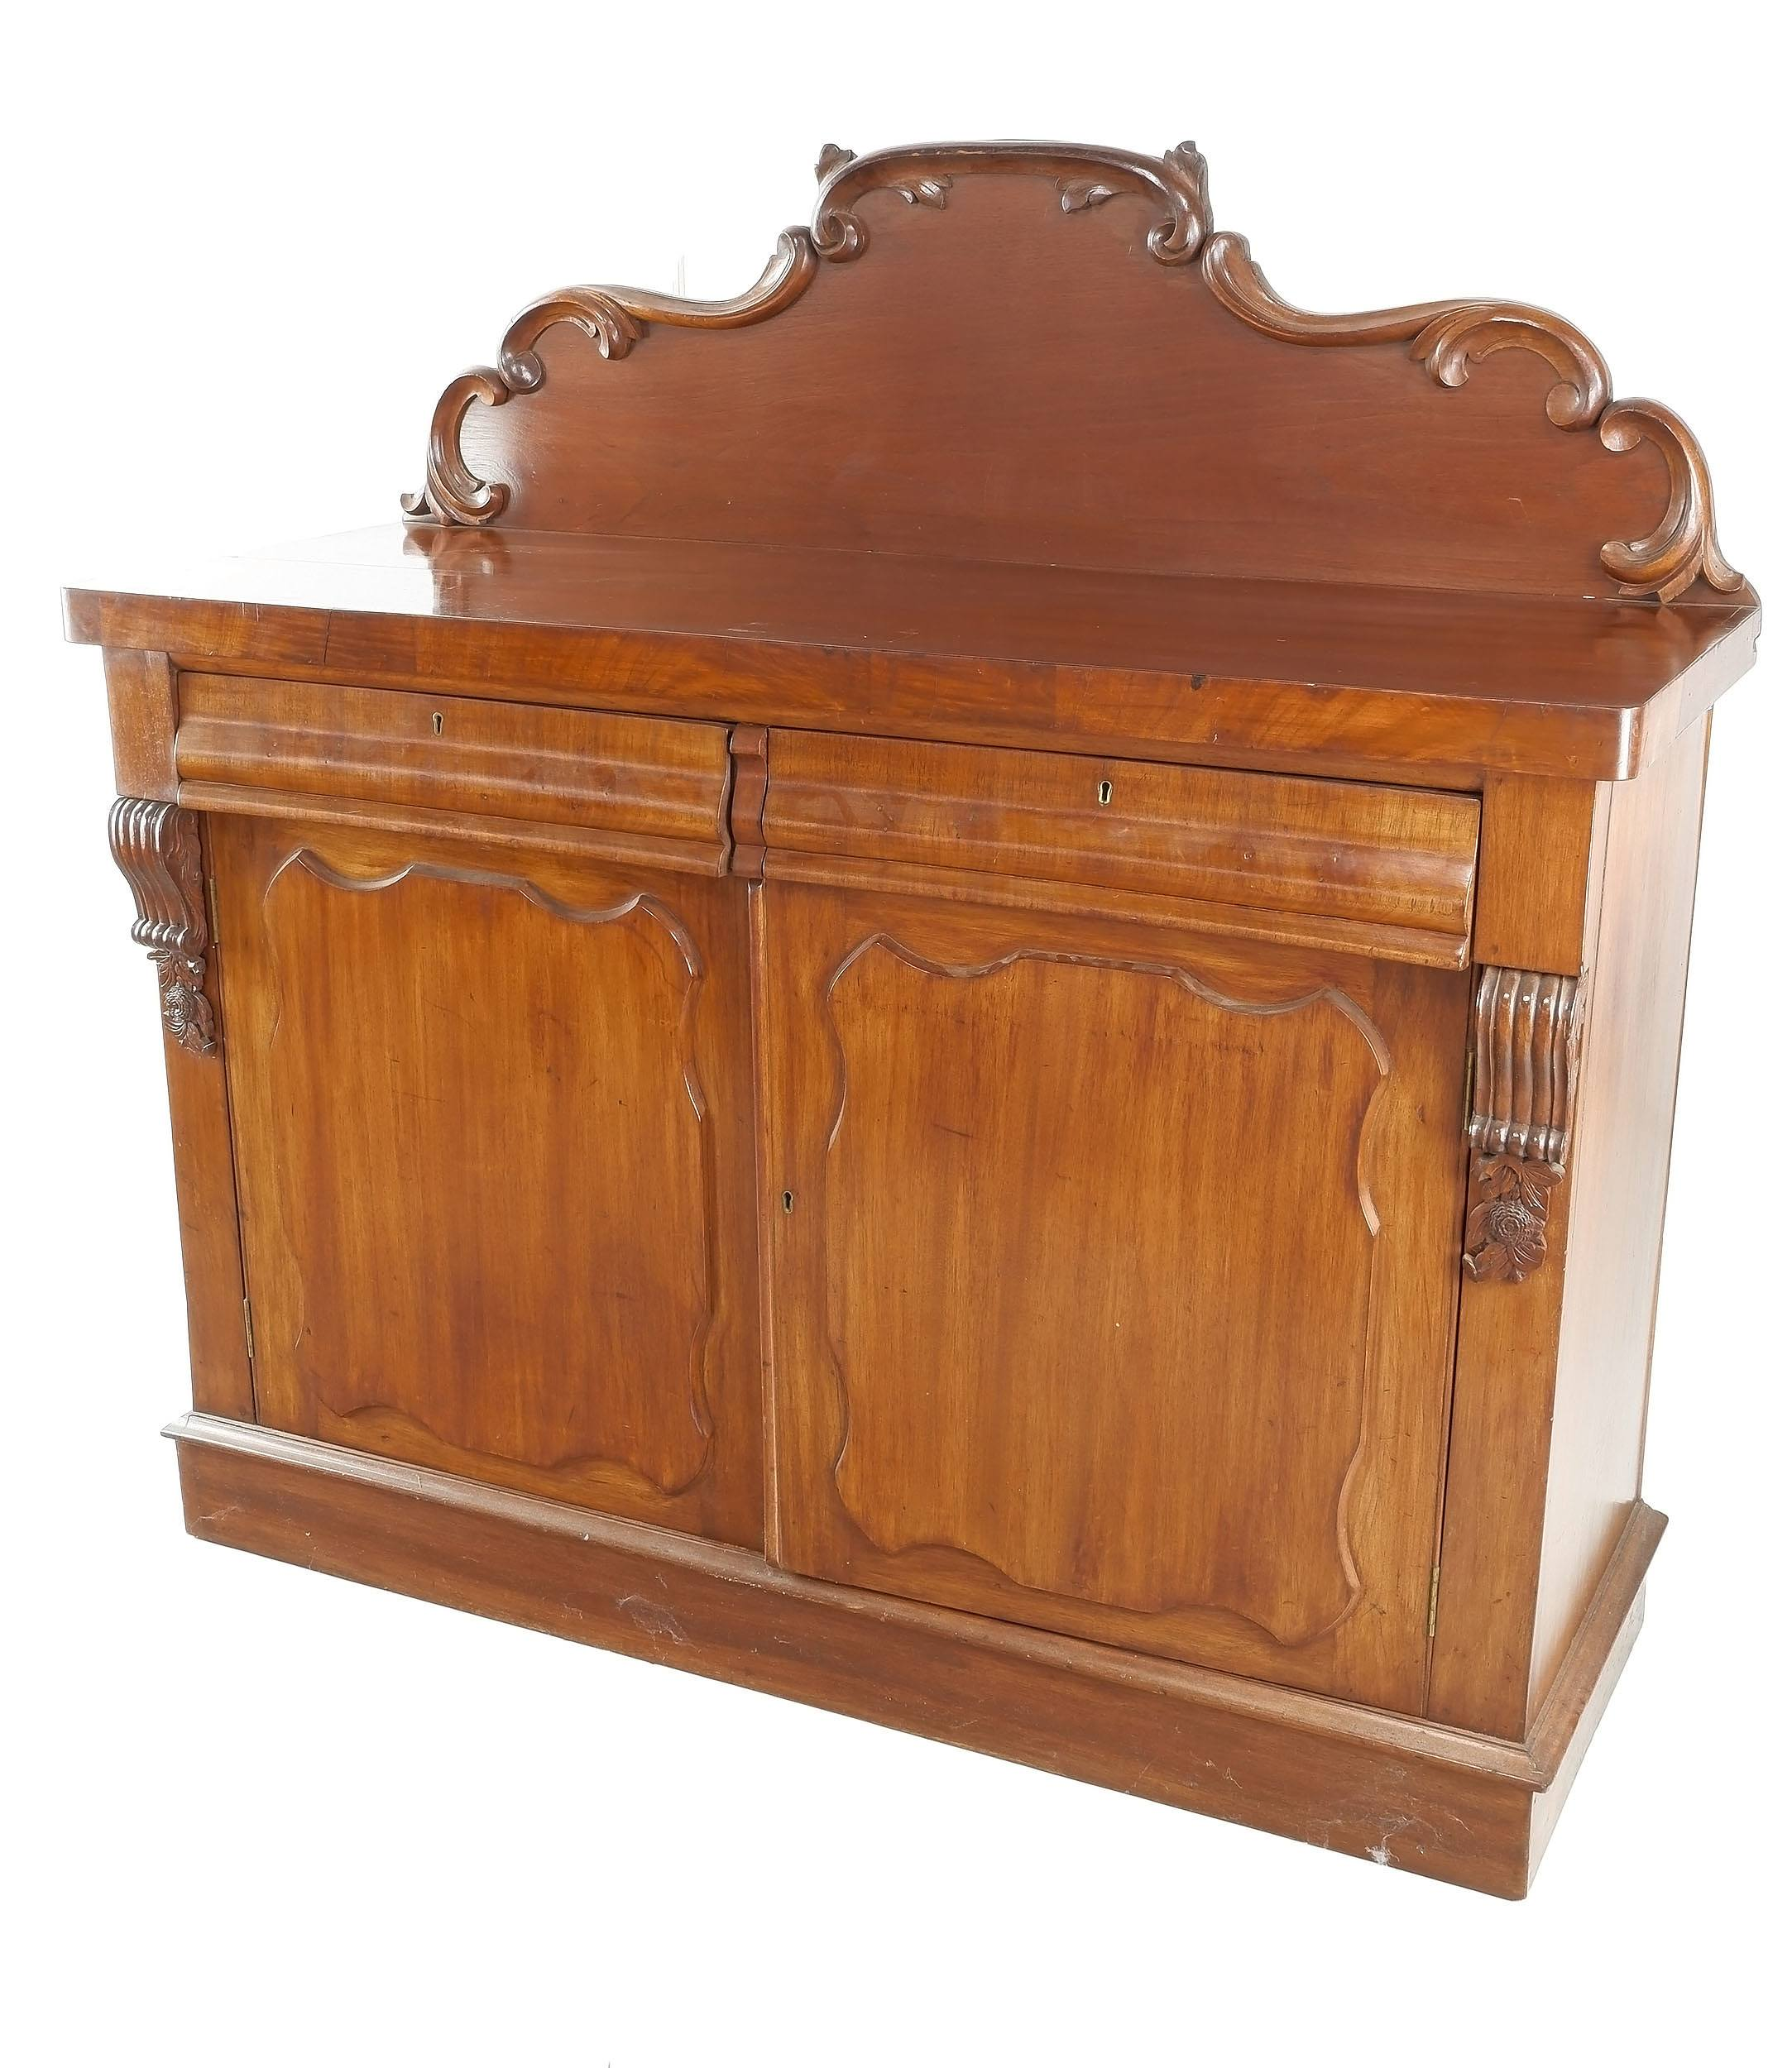 'Antique Australian Cedar Chiffonier with Carved Corbels and Shield Doors, Circa 1880'